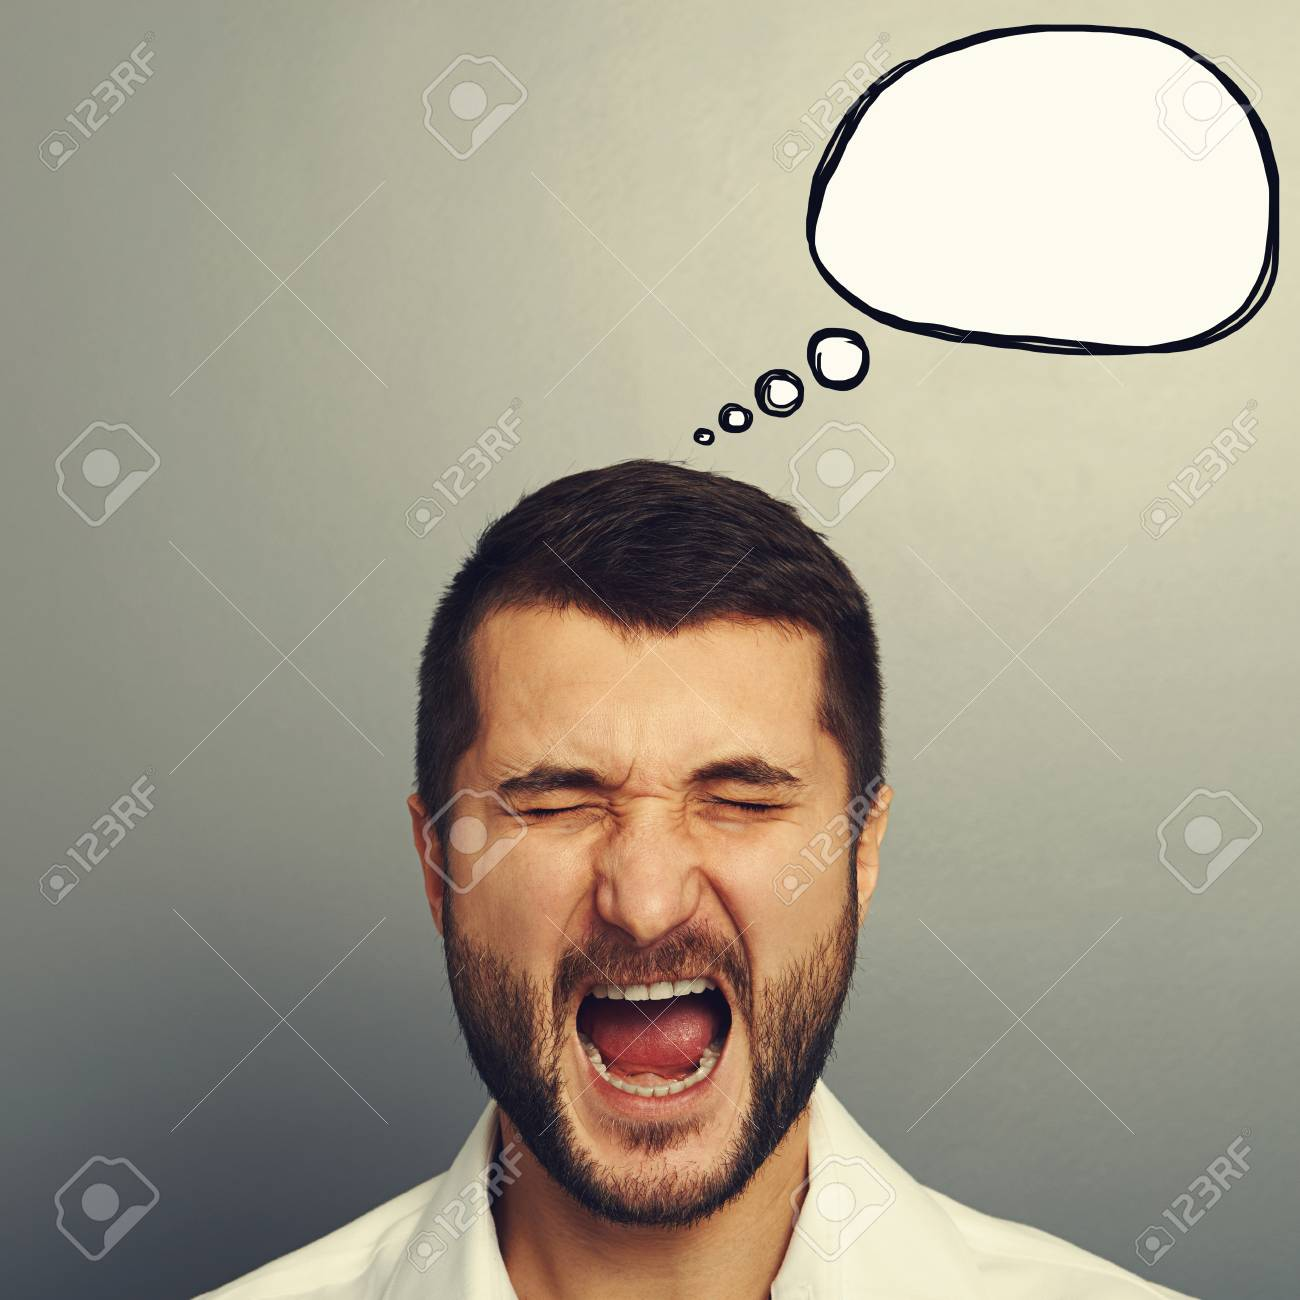 portrait of screaming man with empty speech bubble over grey background Stock Photo - 30834584